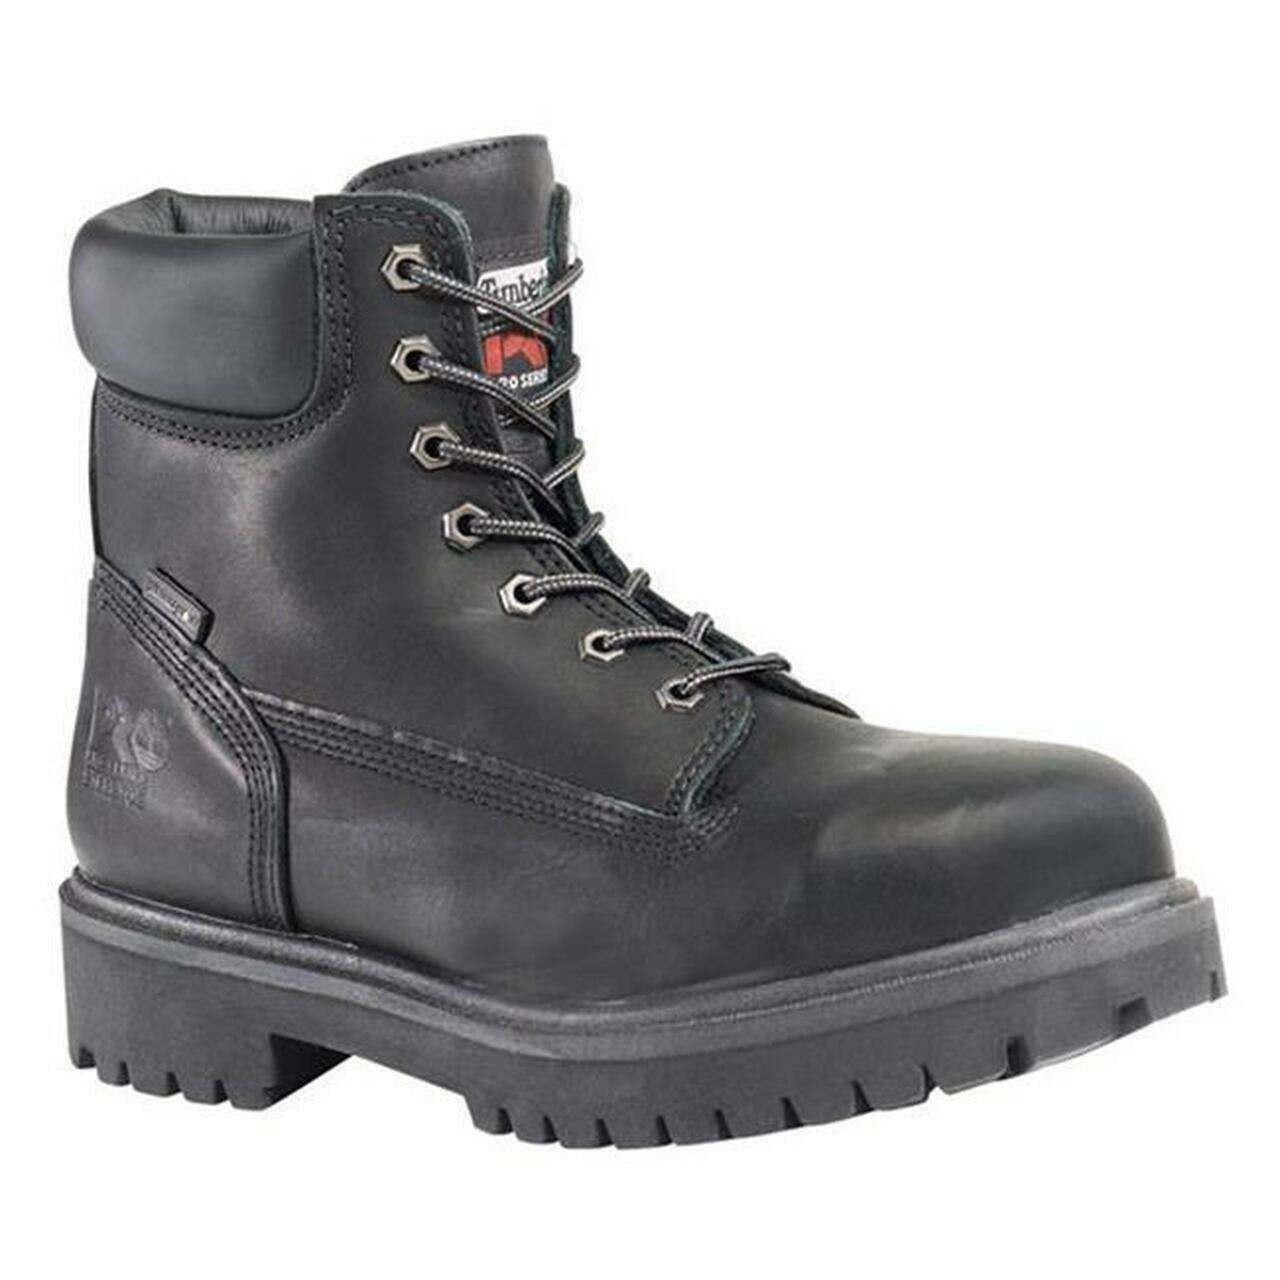 """Timberland 6"""" Direct Attach Steel Safety Toe Waterproof Insulated"""